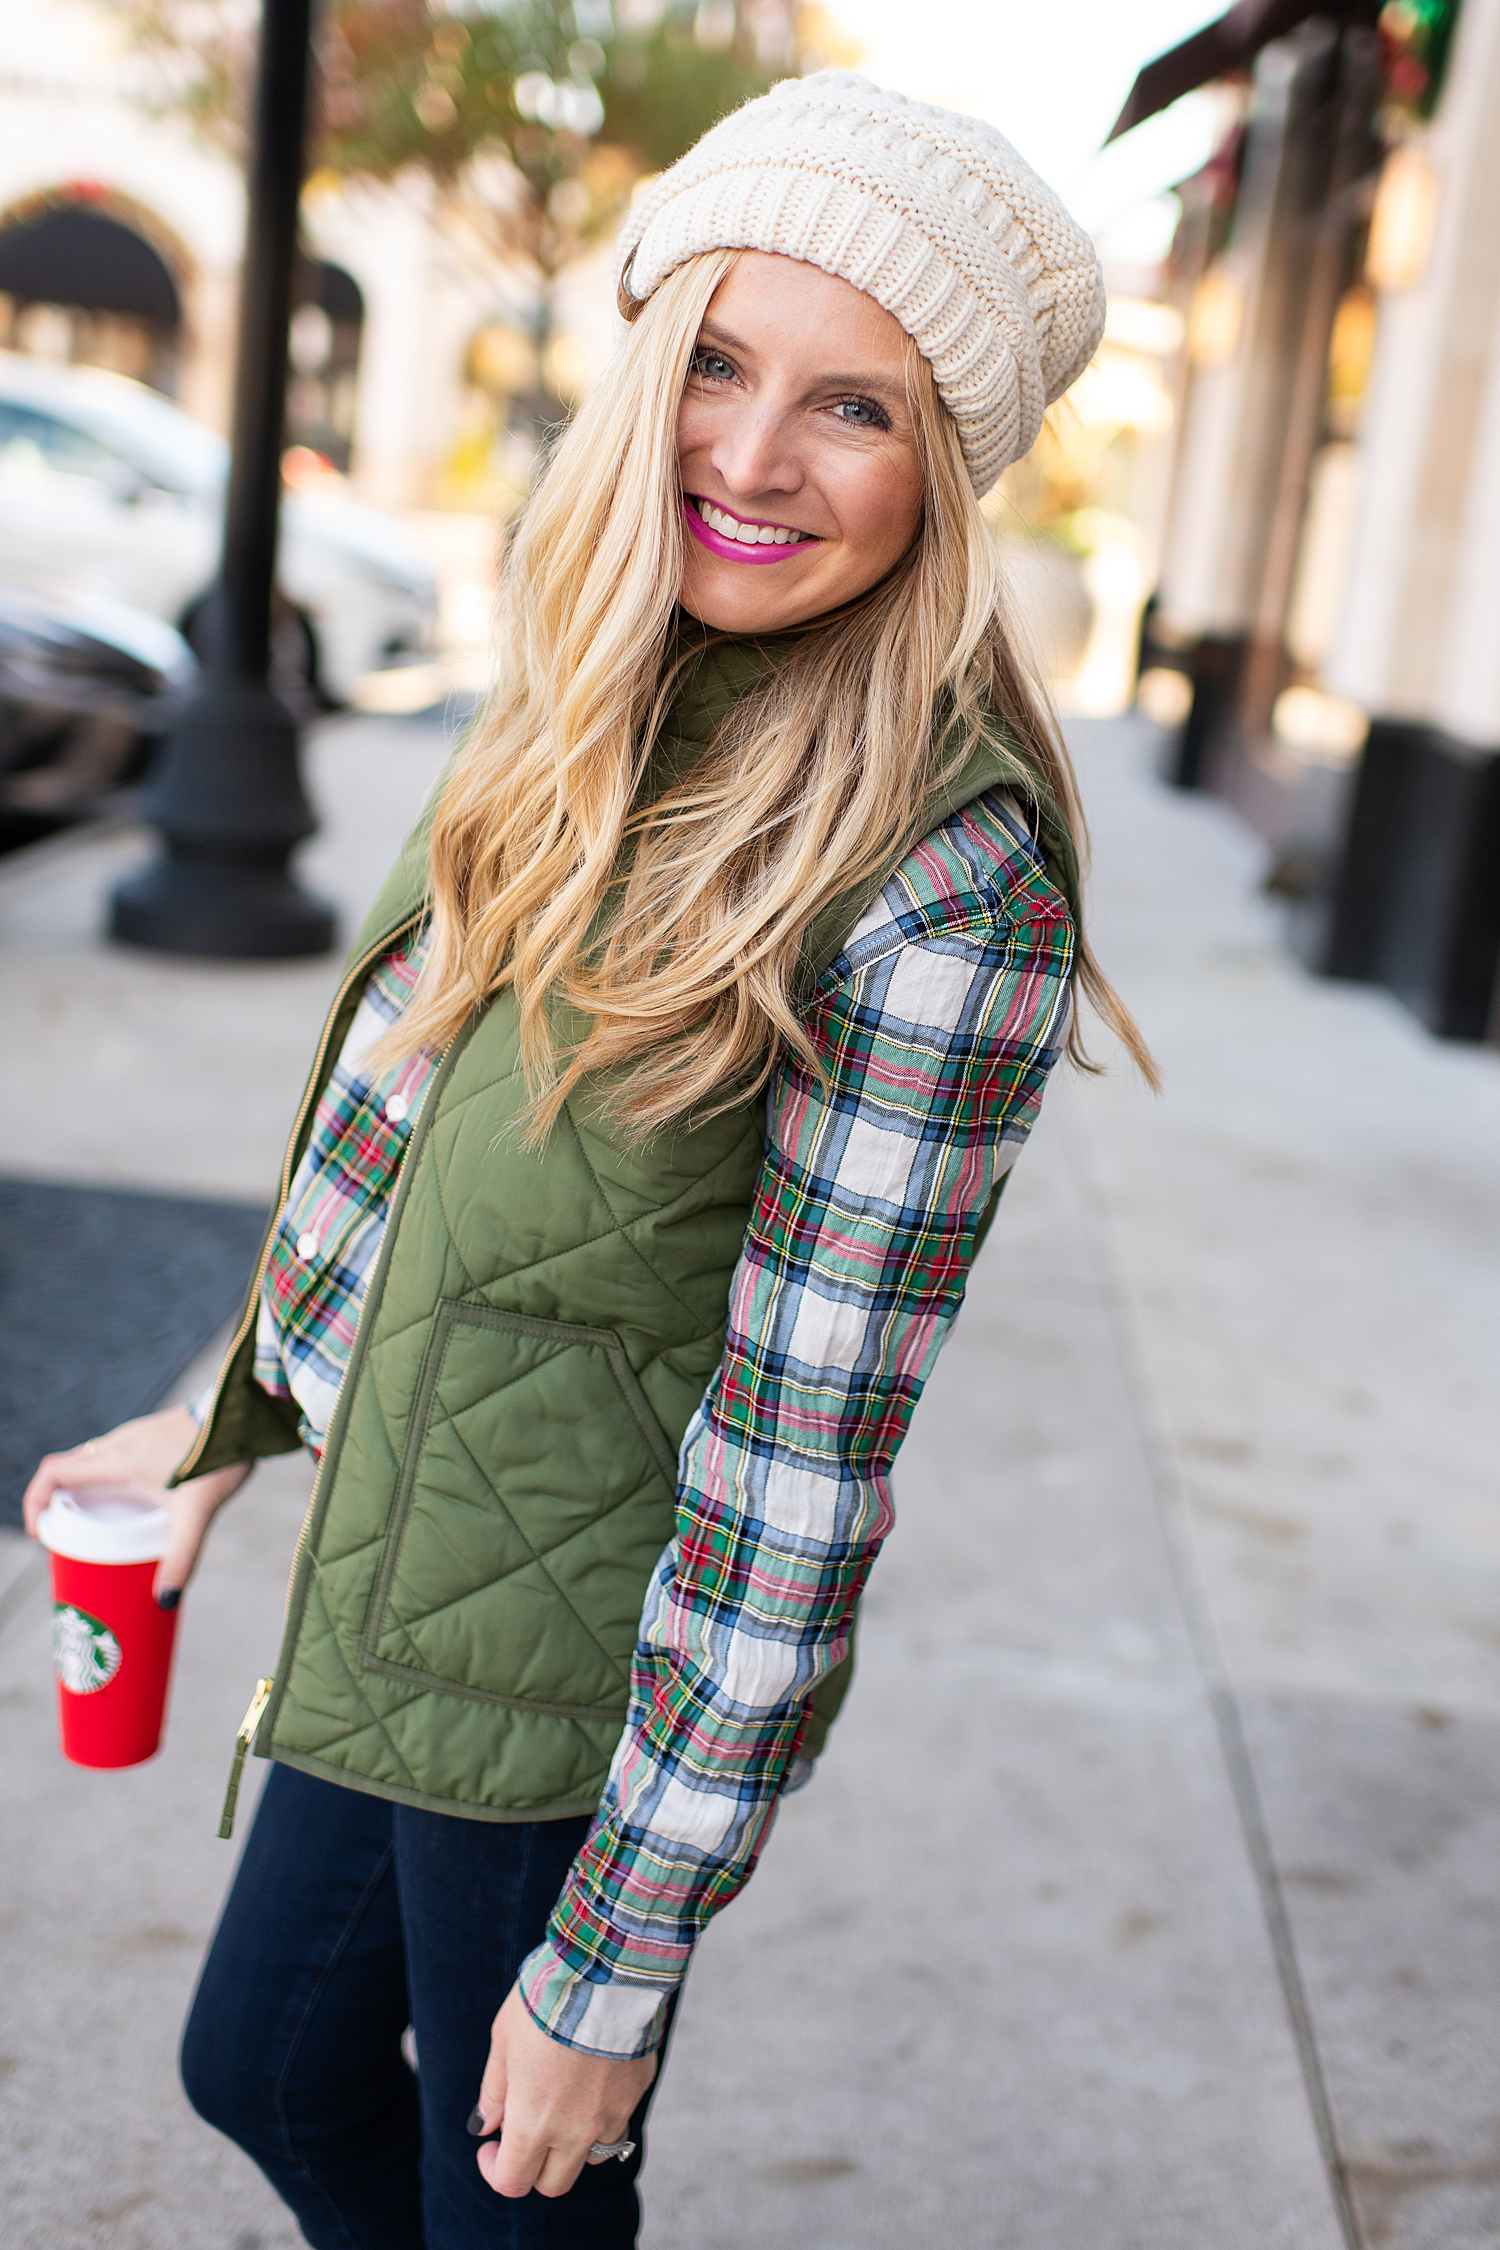 Winter fashion Amazon Favorites featured by top Houston fashion blogger, Fancy Ashley: image of a woman wearing a J.Crew tartan shirt, J.Crew puffer vest, Nordstrom high waist ankle jeans, pom pom beanie and Sole Society bootie